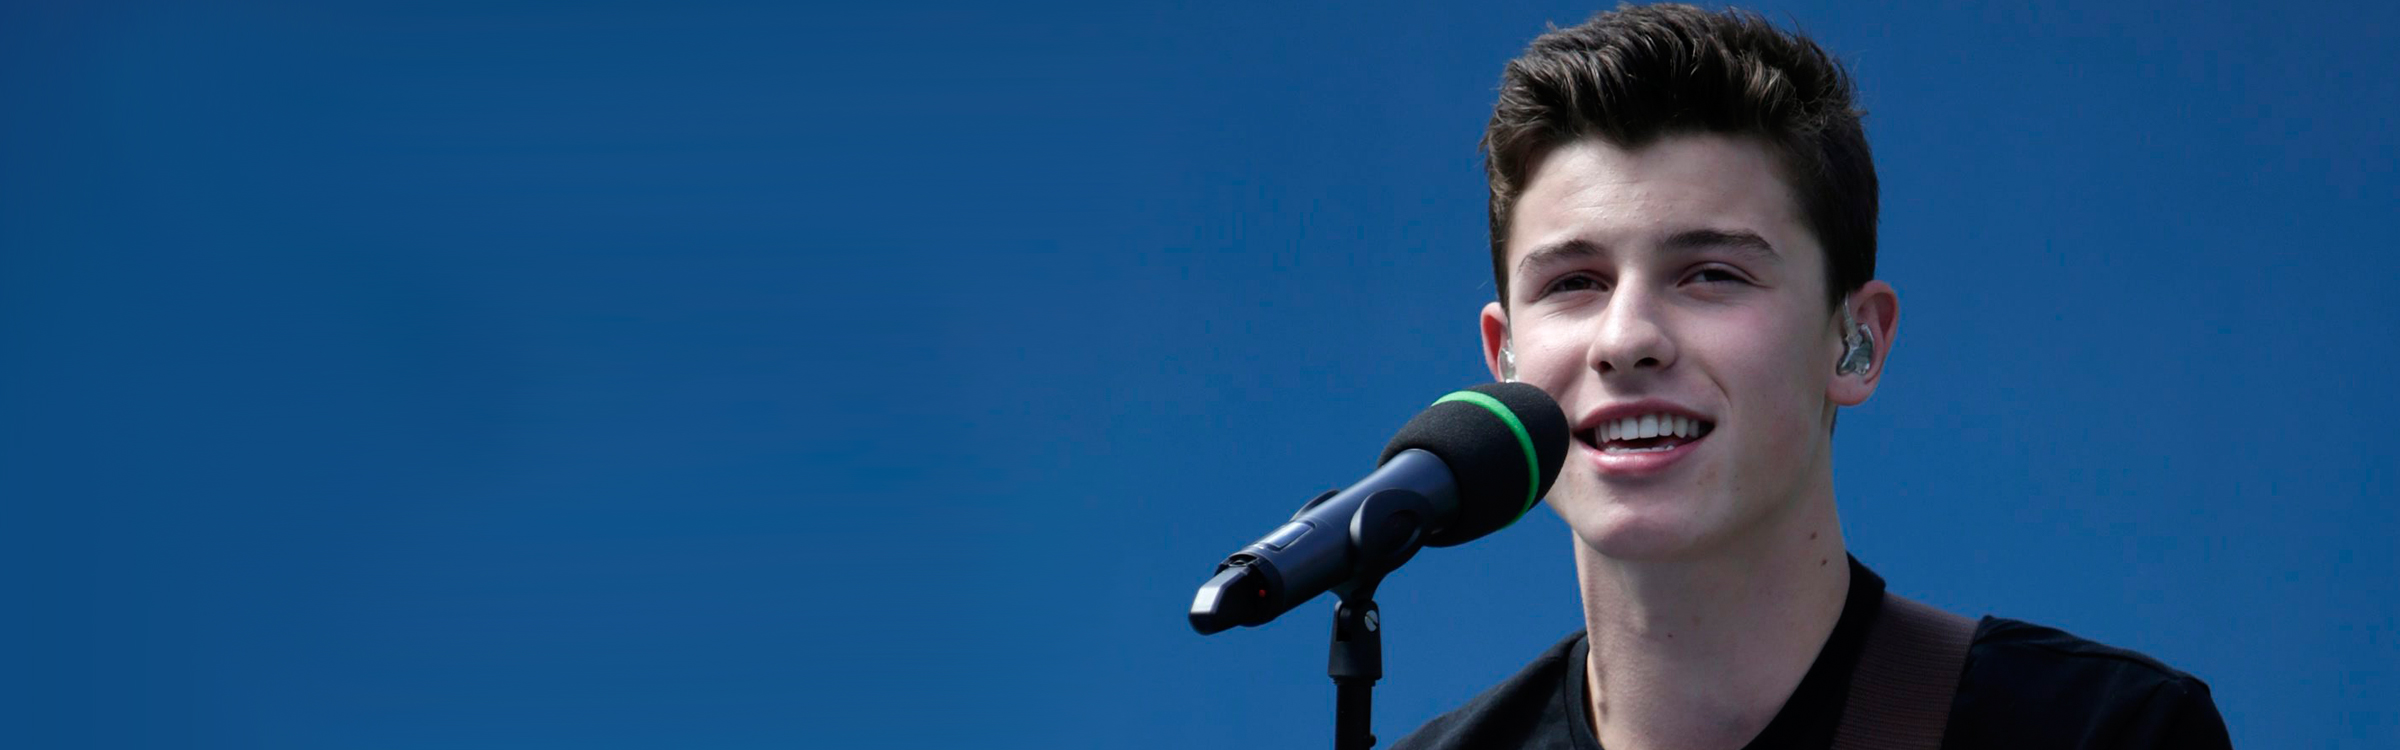 Shawn header